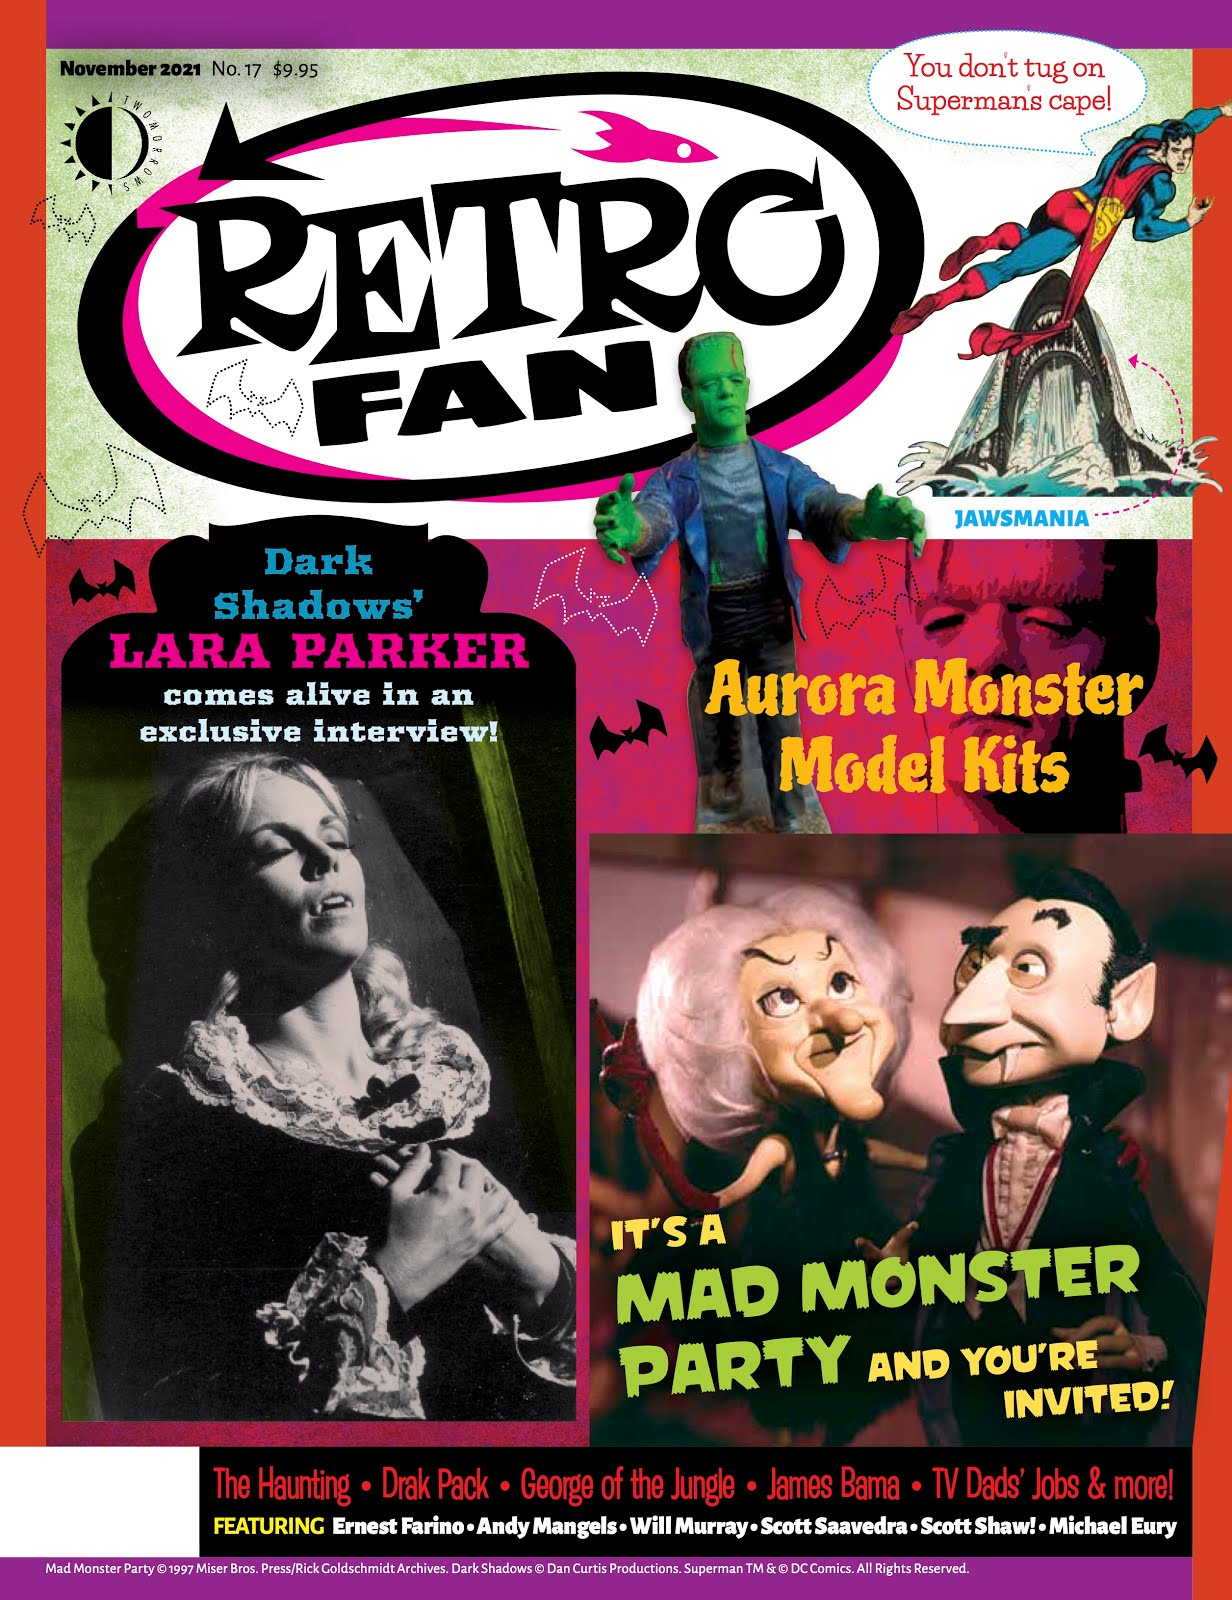 RetroFan Magazine #17 with my Mad Monster Party? Article